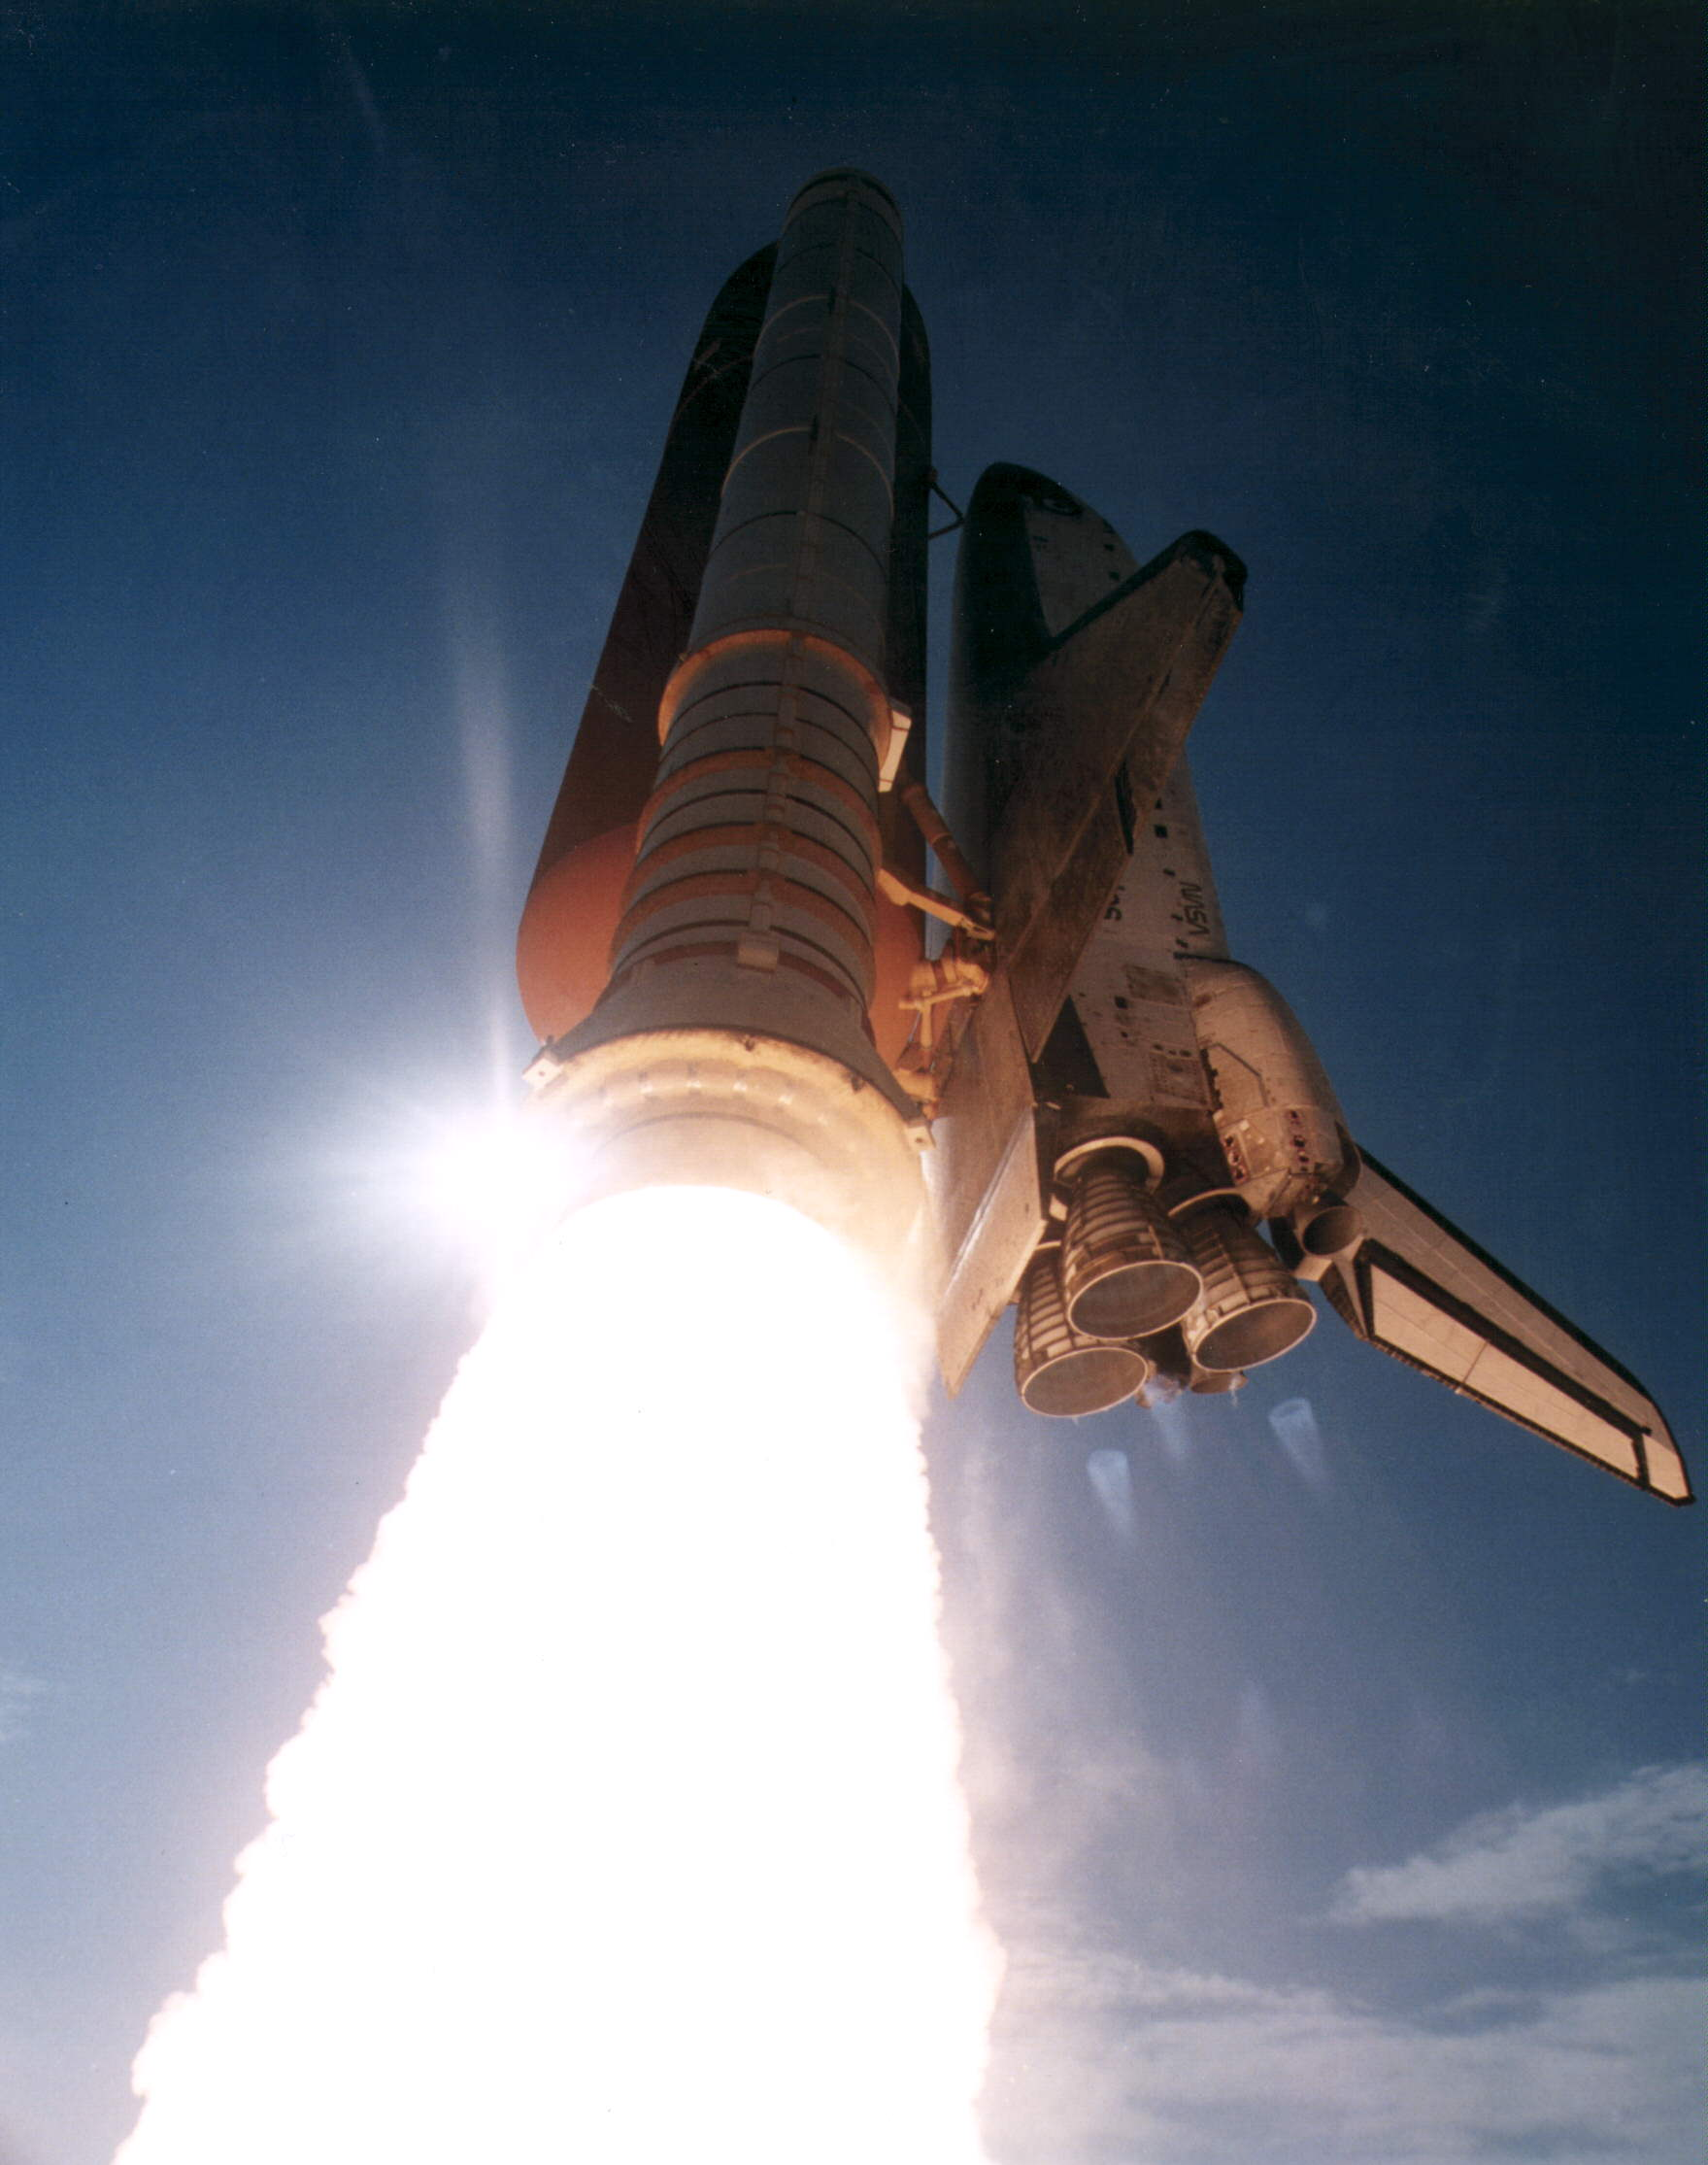 Space Shuttle Discovery's STS-70 mission launched on July 13, 1995 from Kennedy Space Center. STS-70 was the last of seven shuttle missions to carry a Tracking and Data Relay Satellite a tool used by NASA to communicate with other satellites, balloons, aircraft, and the ISS. [1759 x 2229]